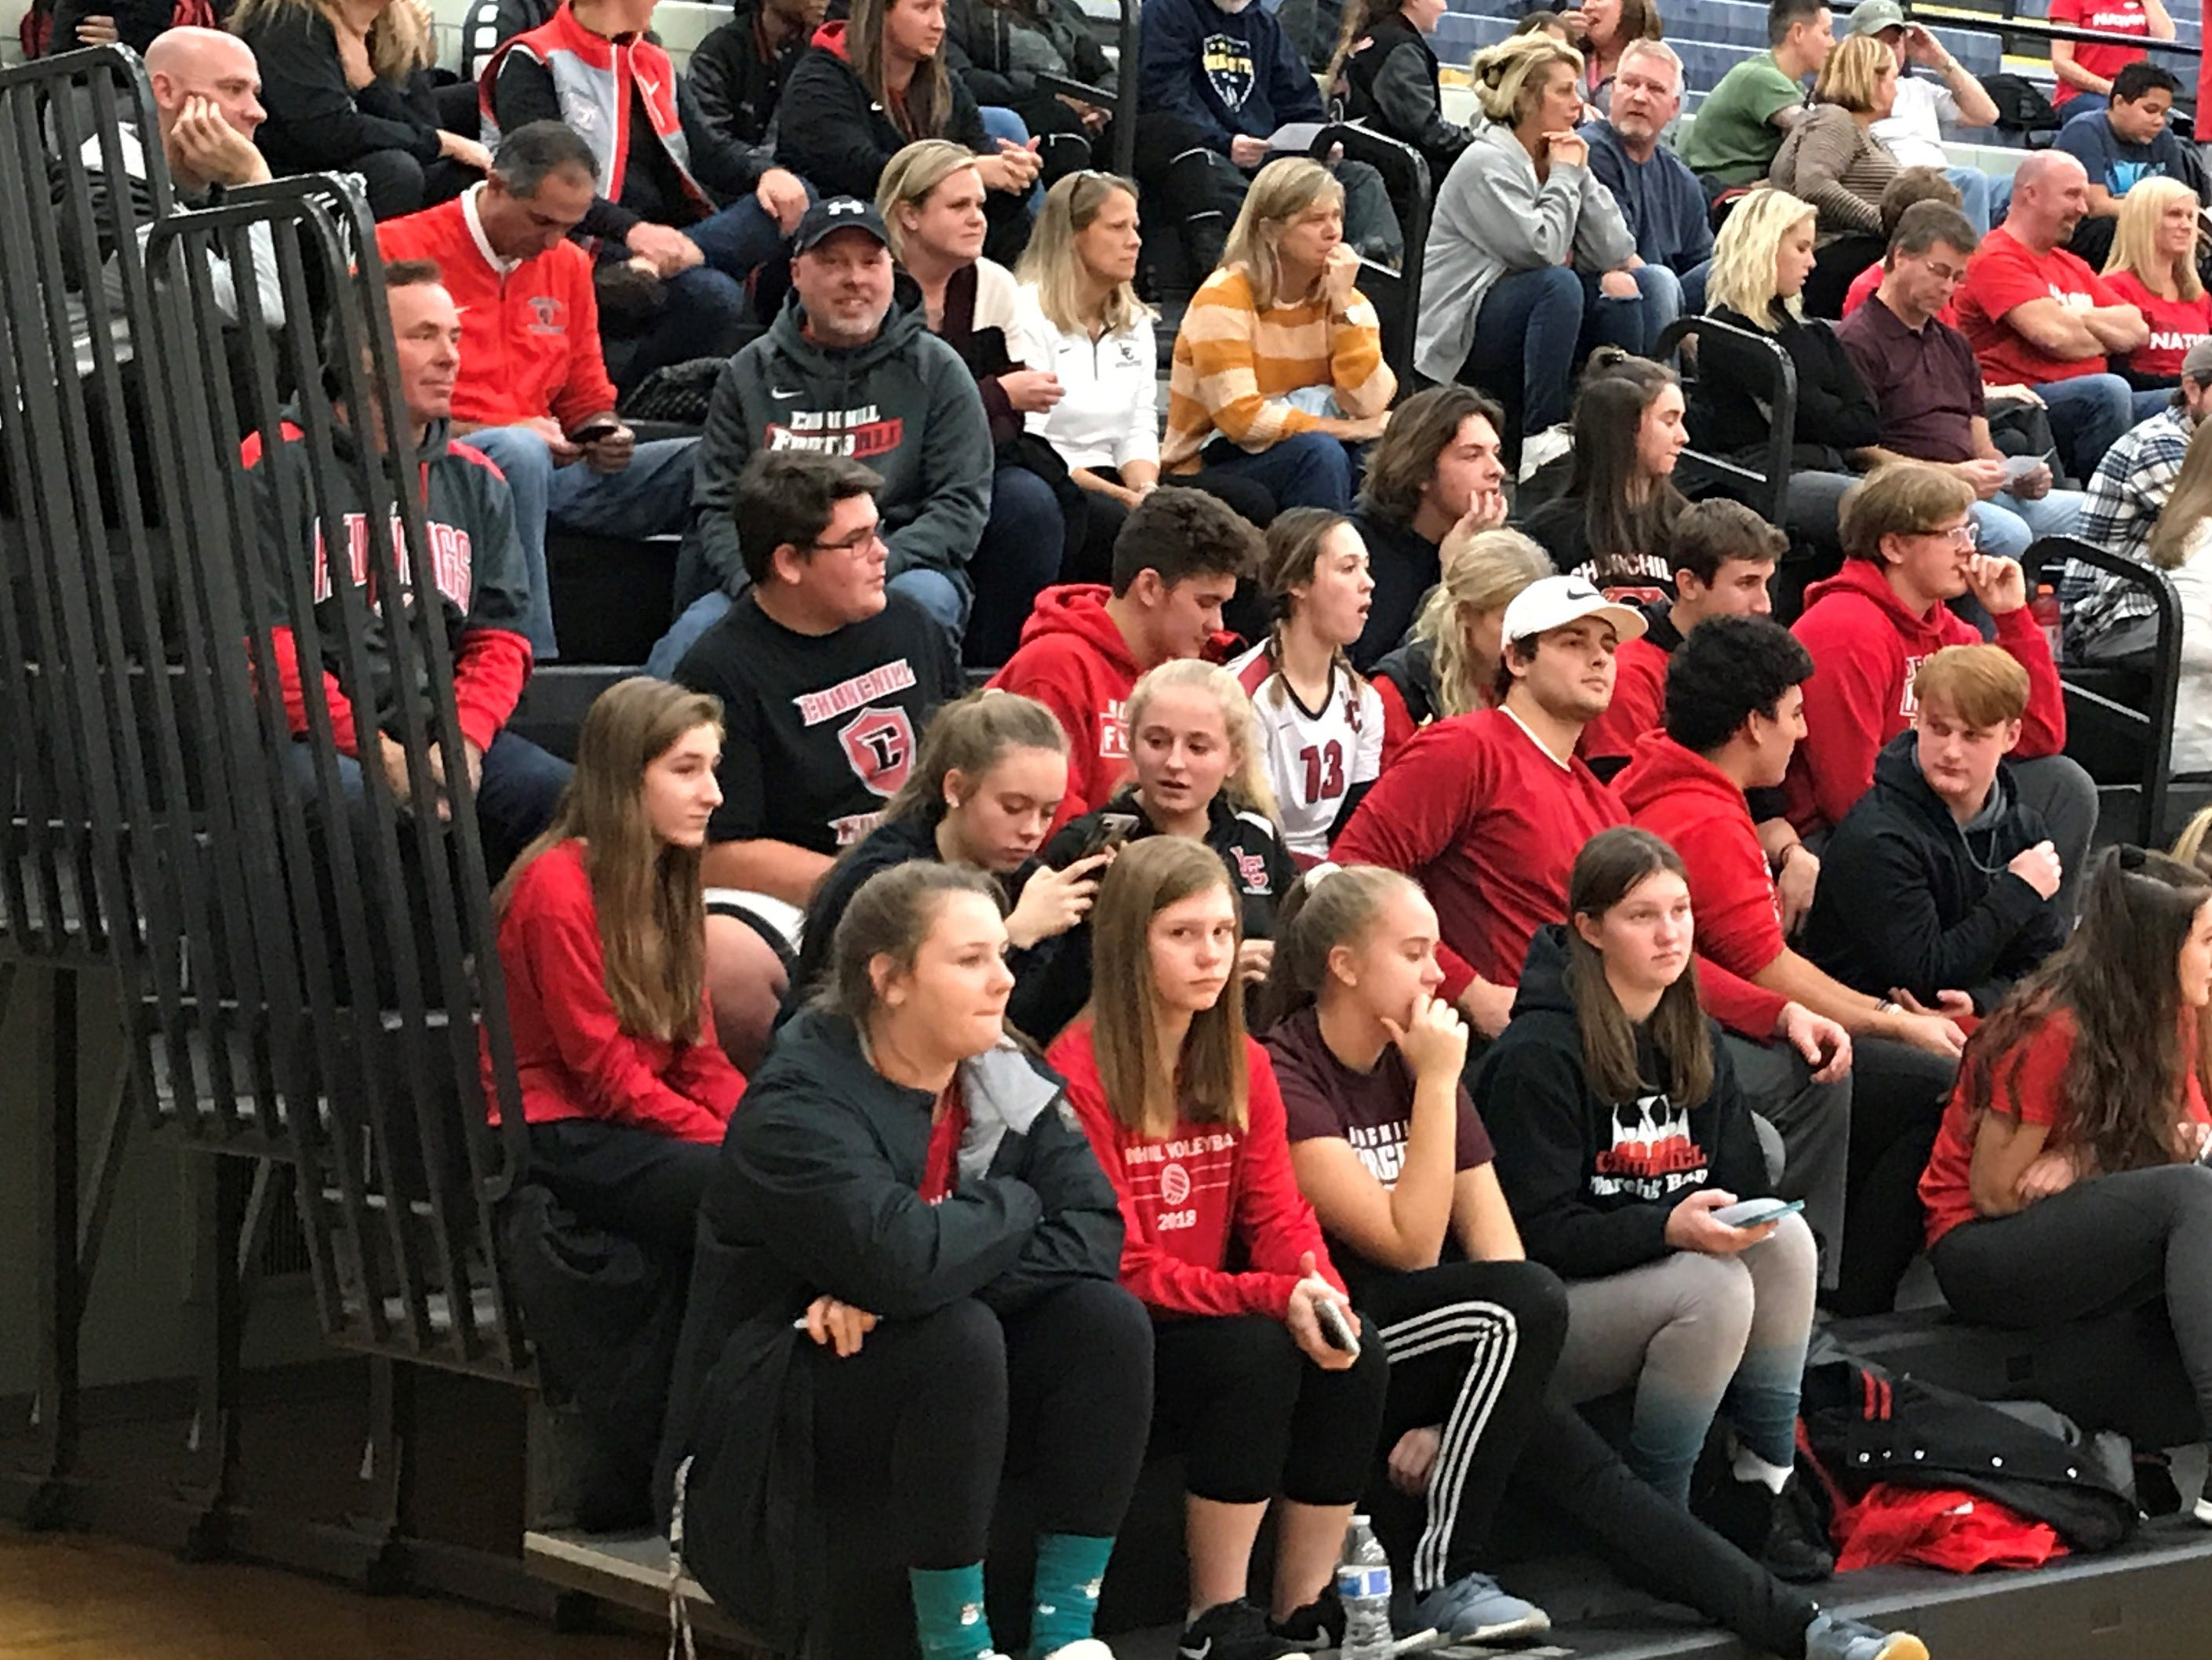 Livonia Churchill's cheering section gets into it during Tuesday's contest.